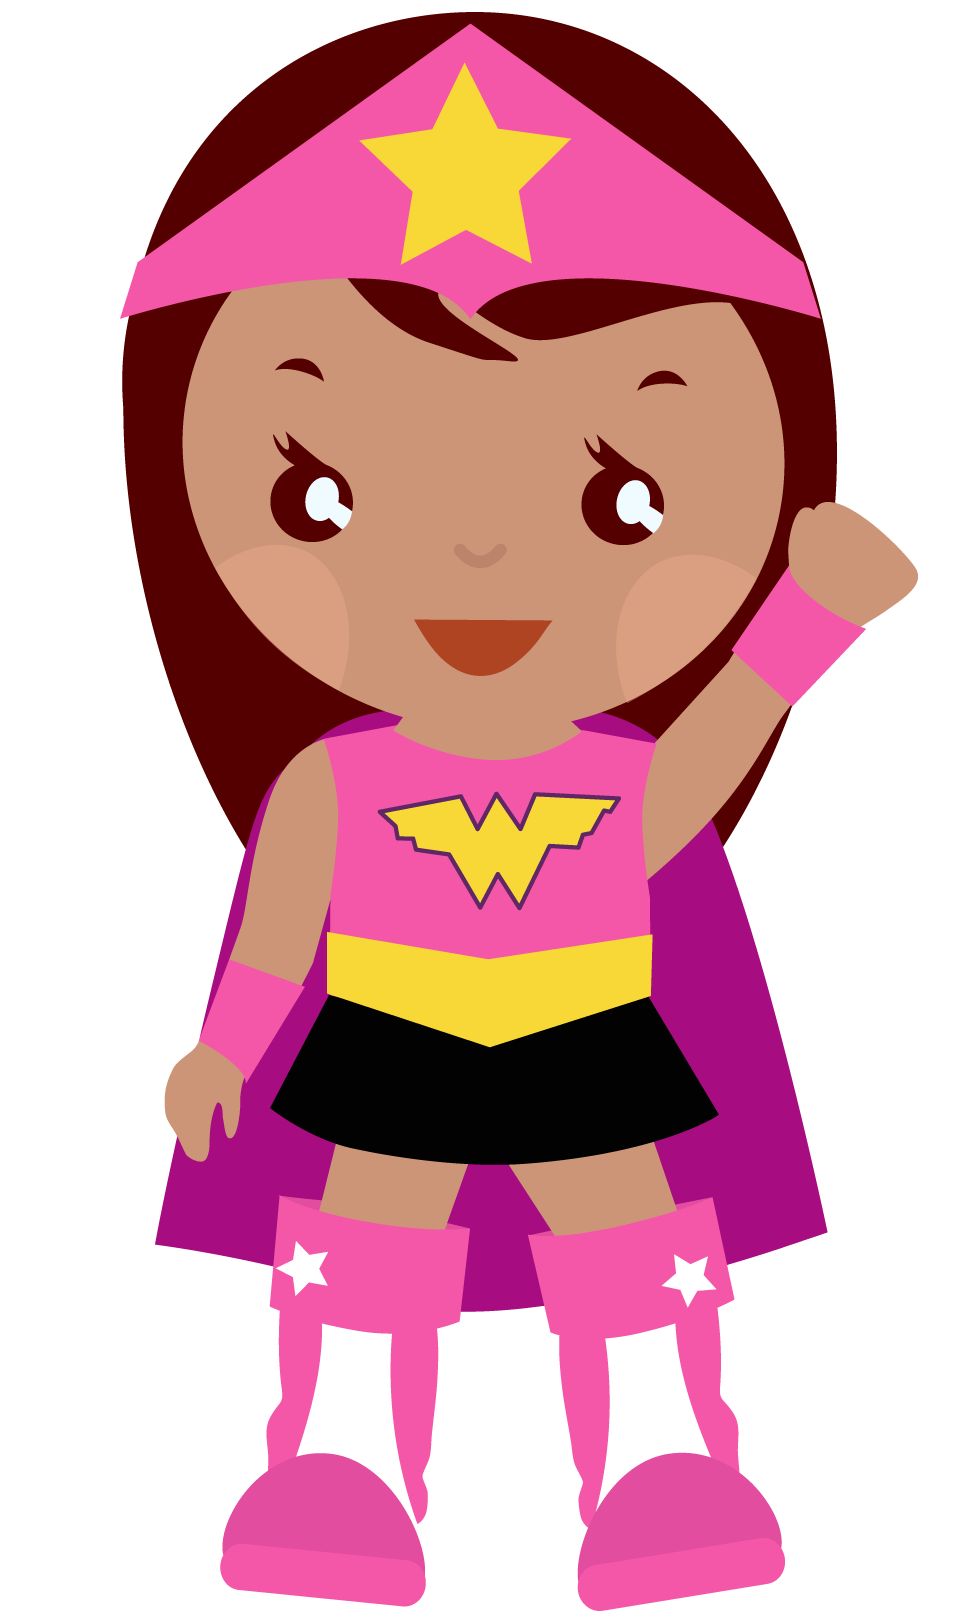 Supergirl clipart png. You can use clip